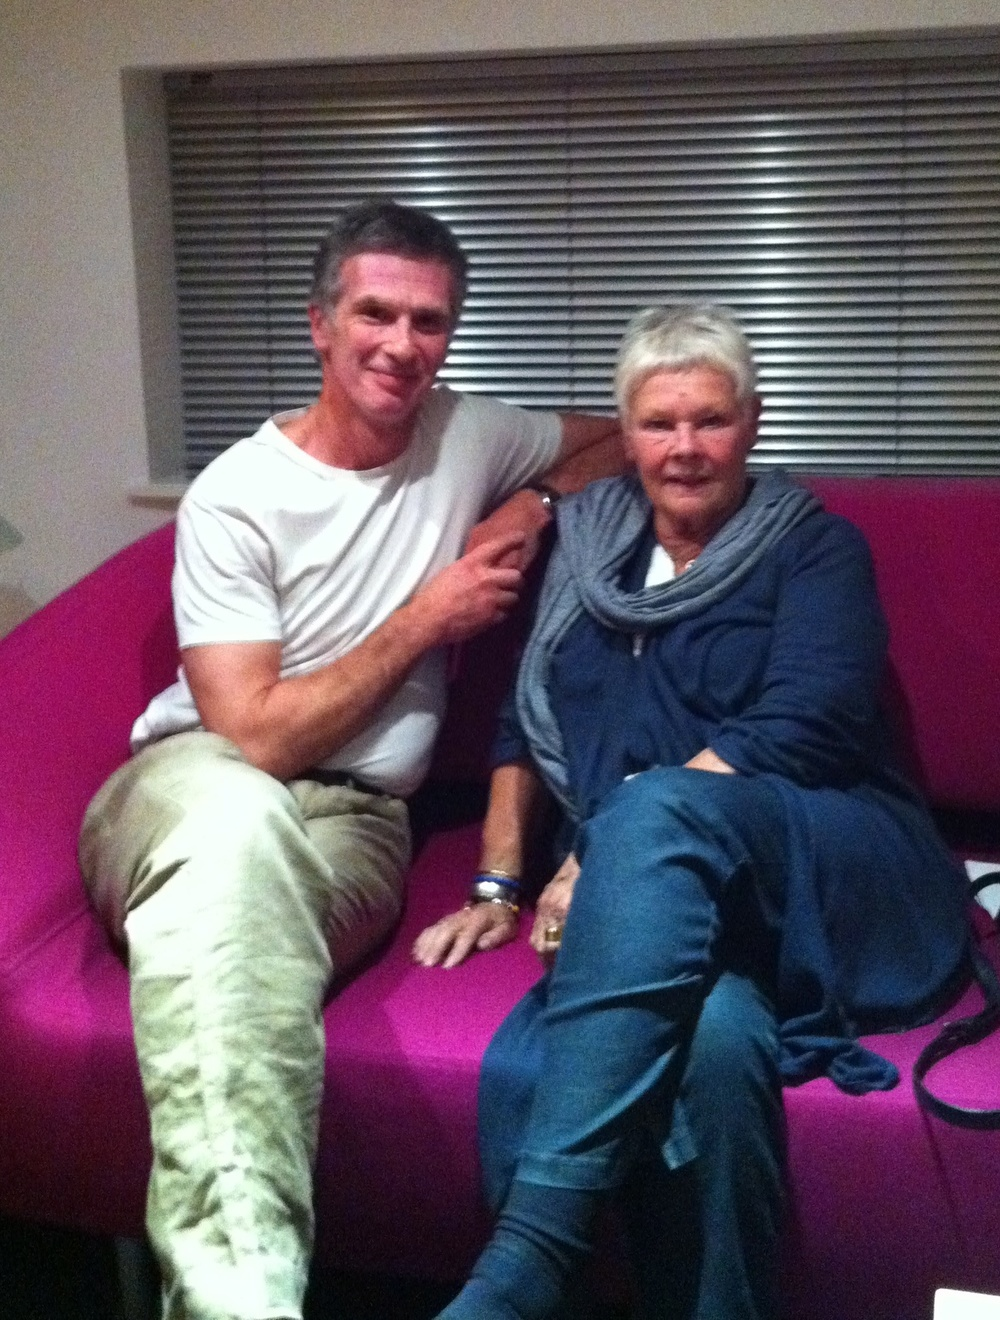 Dame judi dench with Ckuk director chris kent